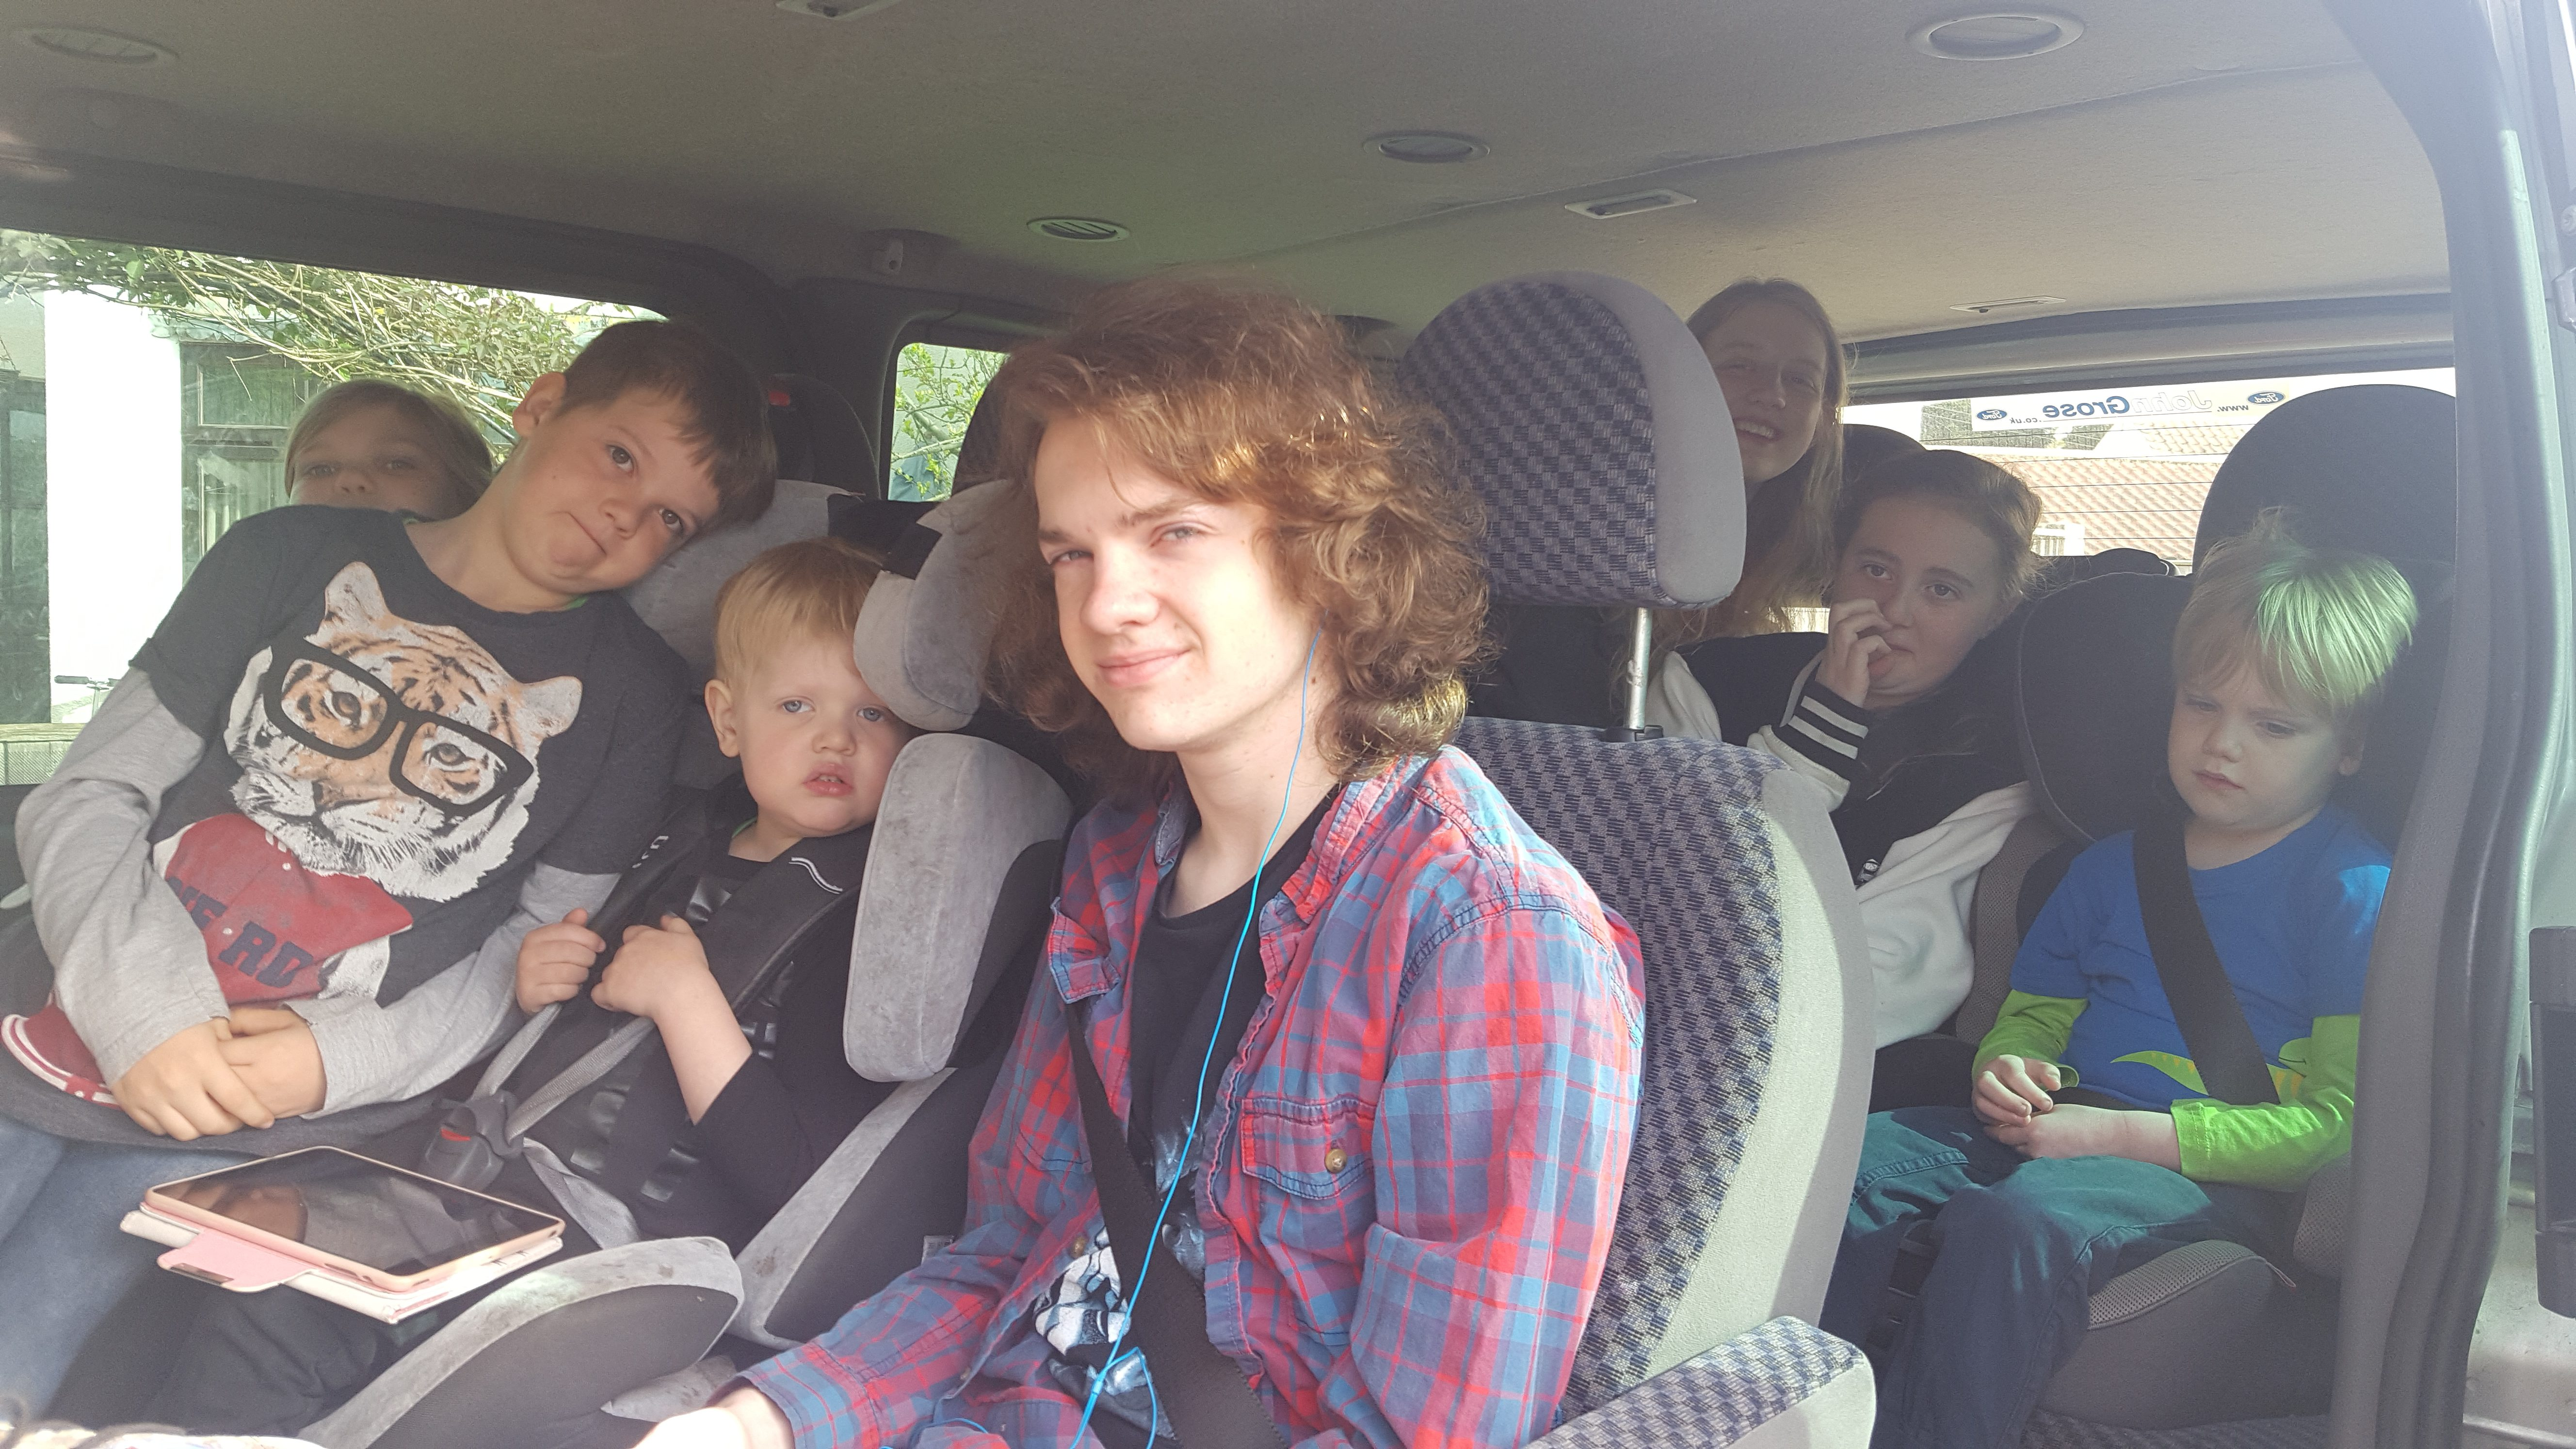 All seven children sitting in the car waiting to drive to the station